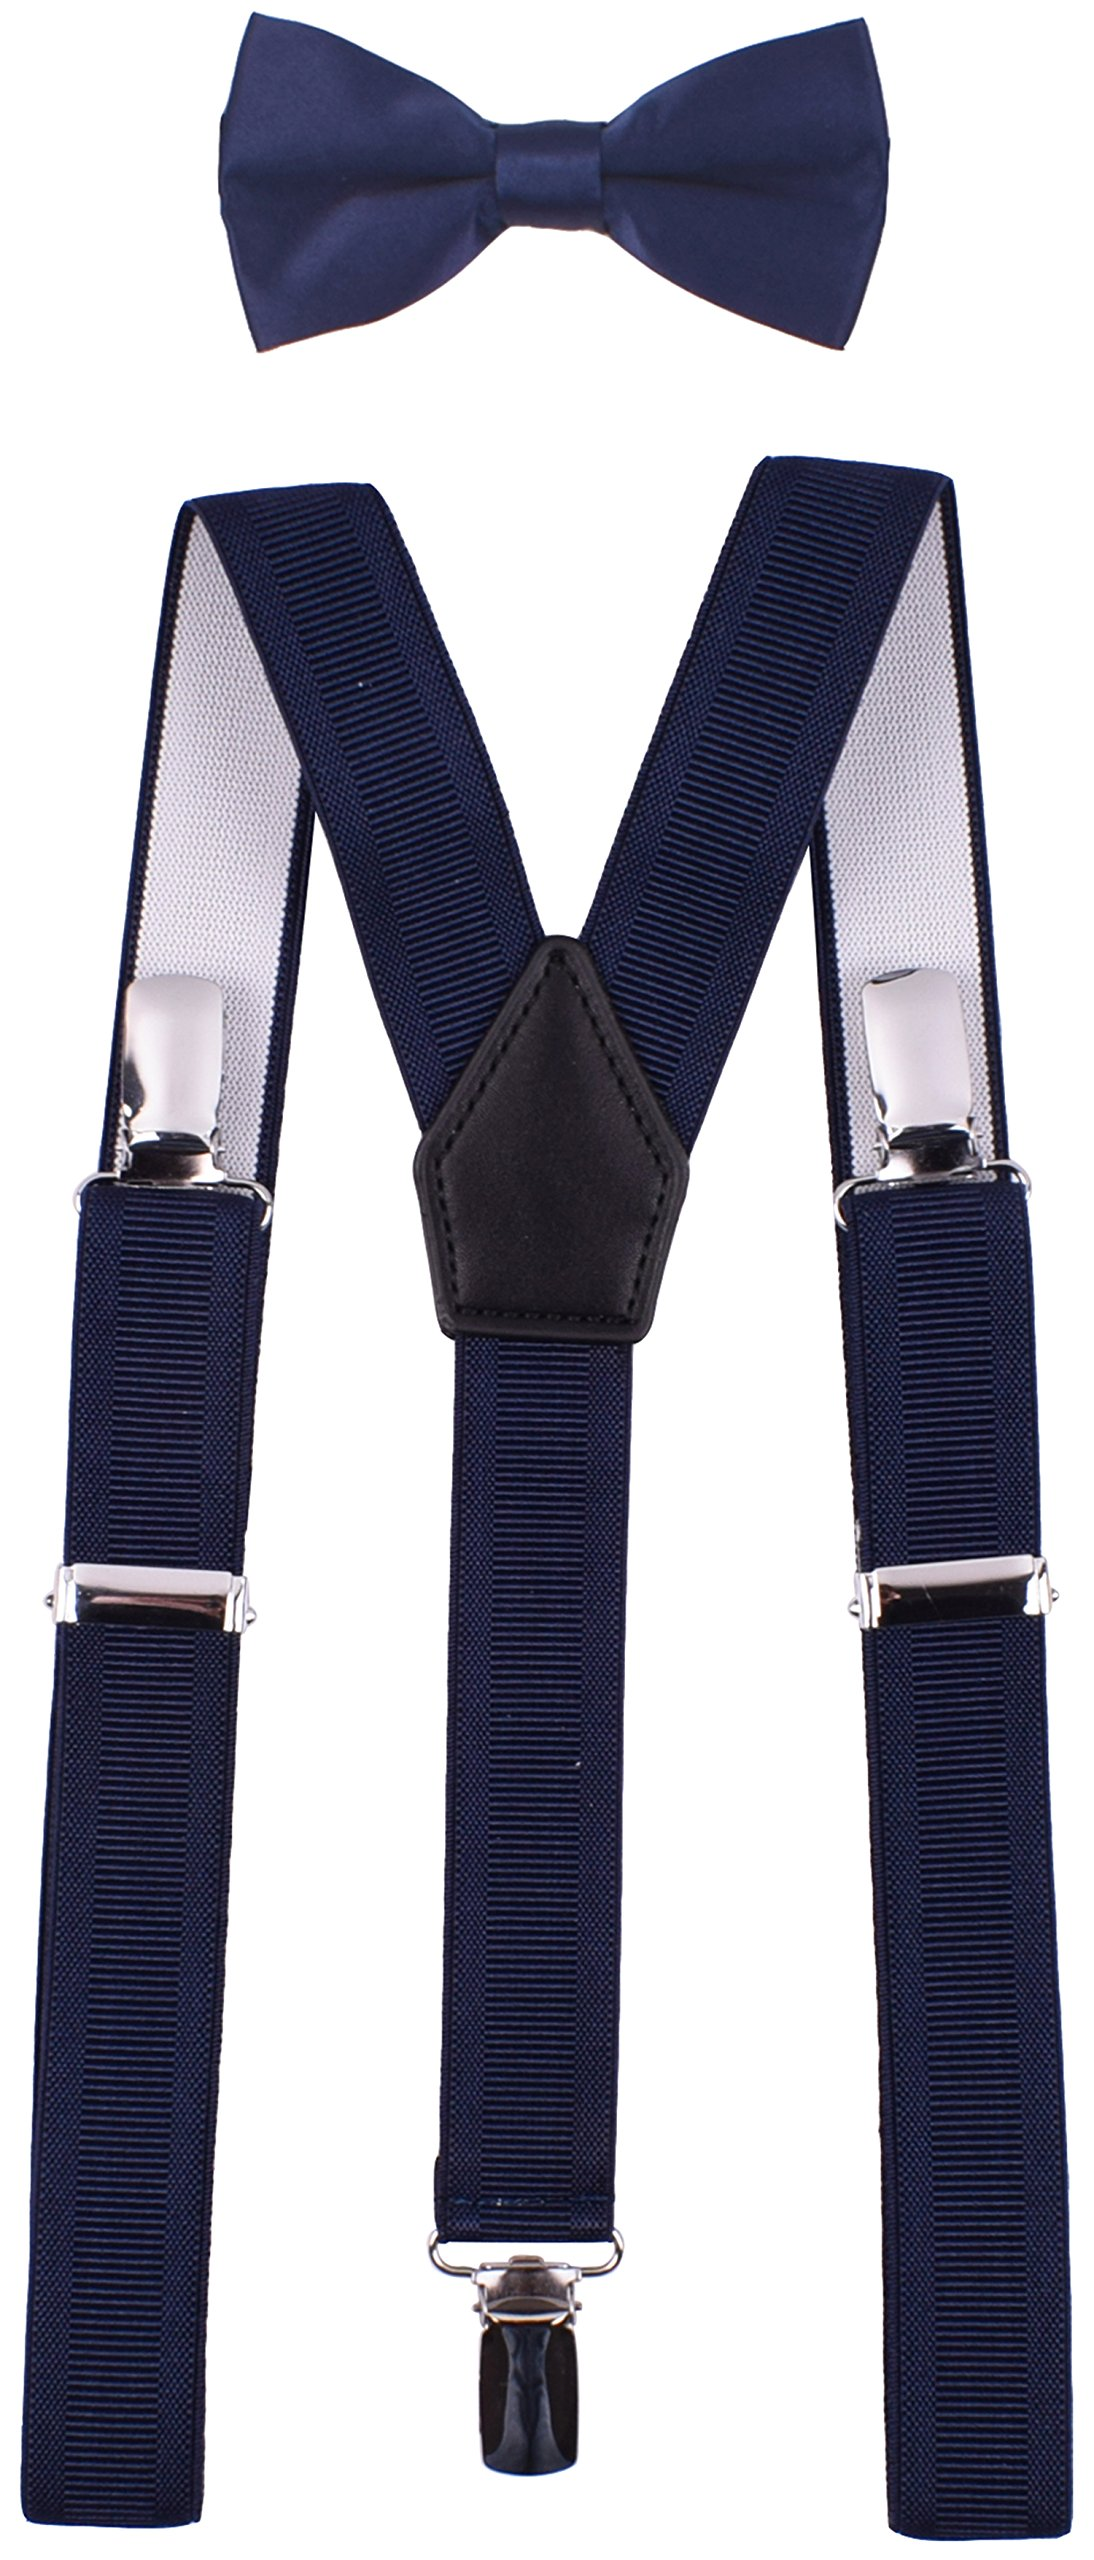 YJDS Kids Suspender Bowtie Sets Classic Y Back Navy Thread 26''